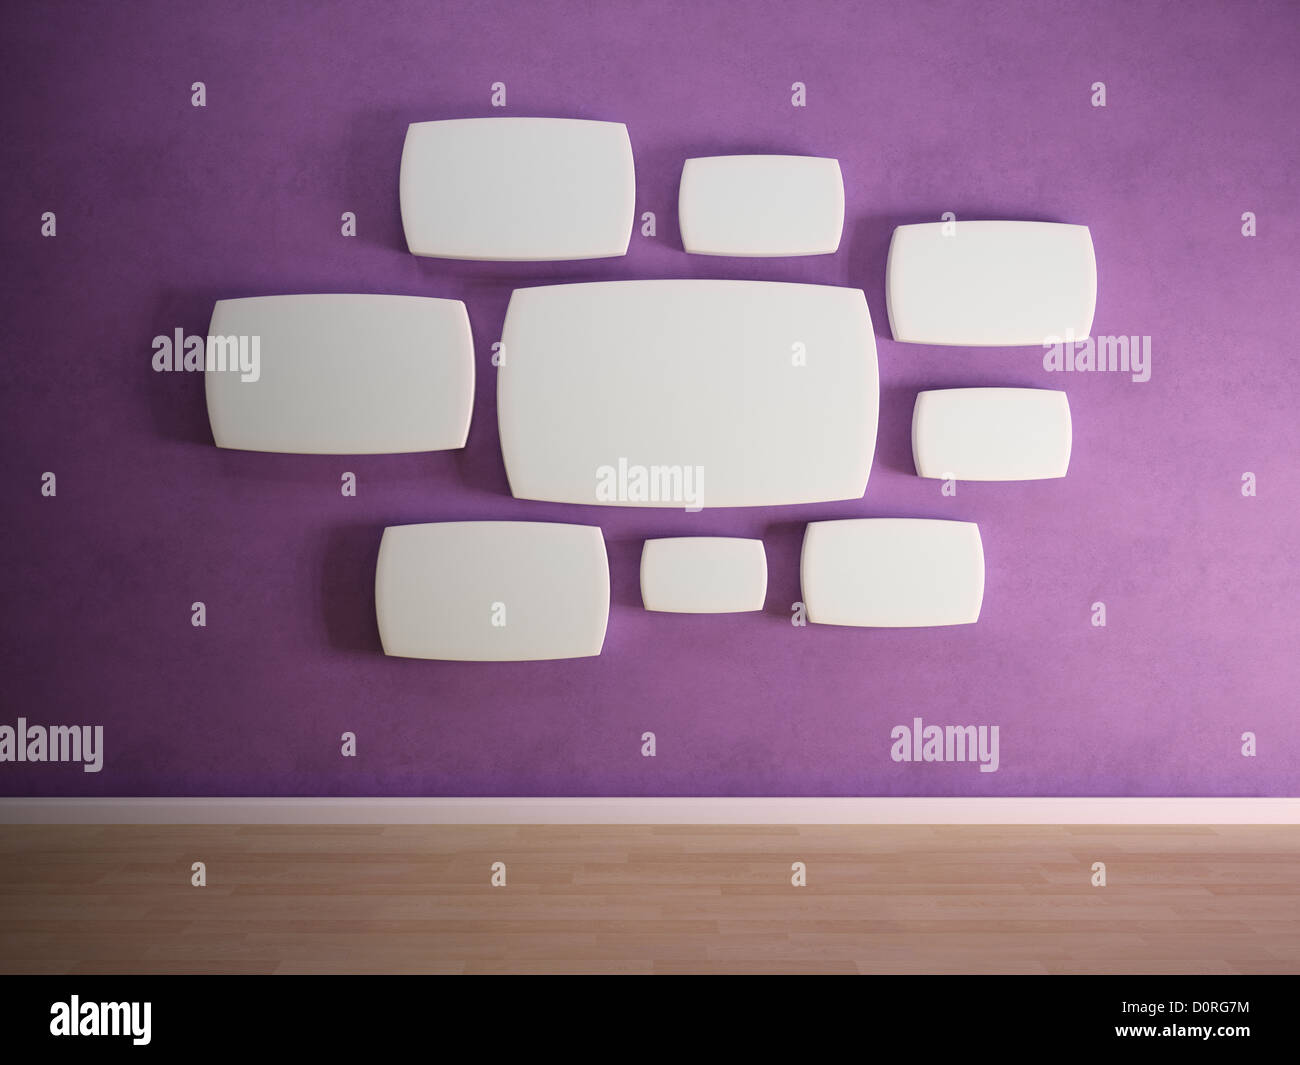 Empty panels on purple wall - Stock Image